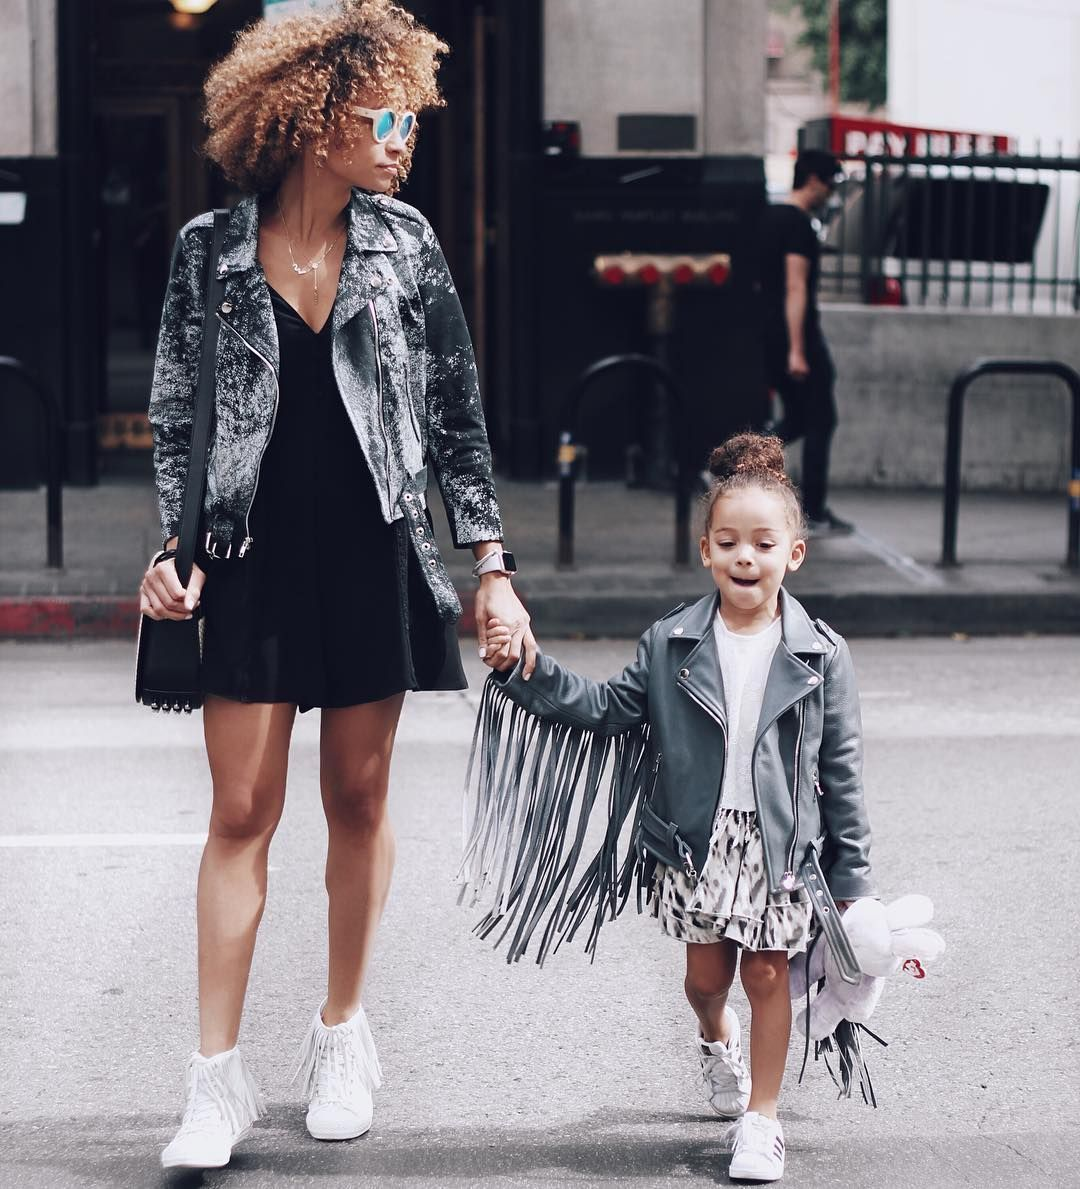 The Fashionista Mom and daughter